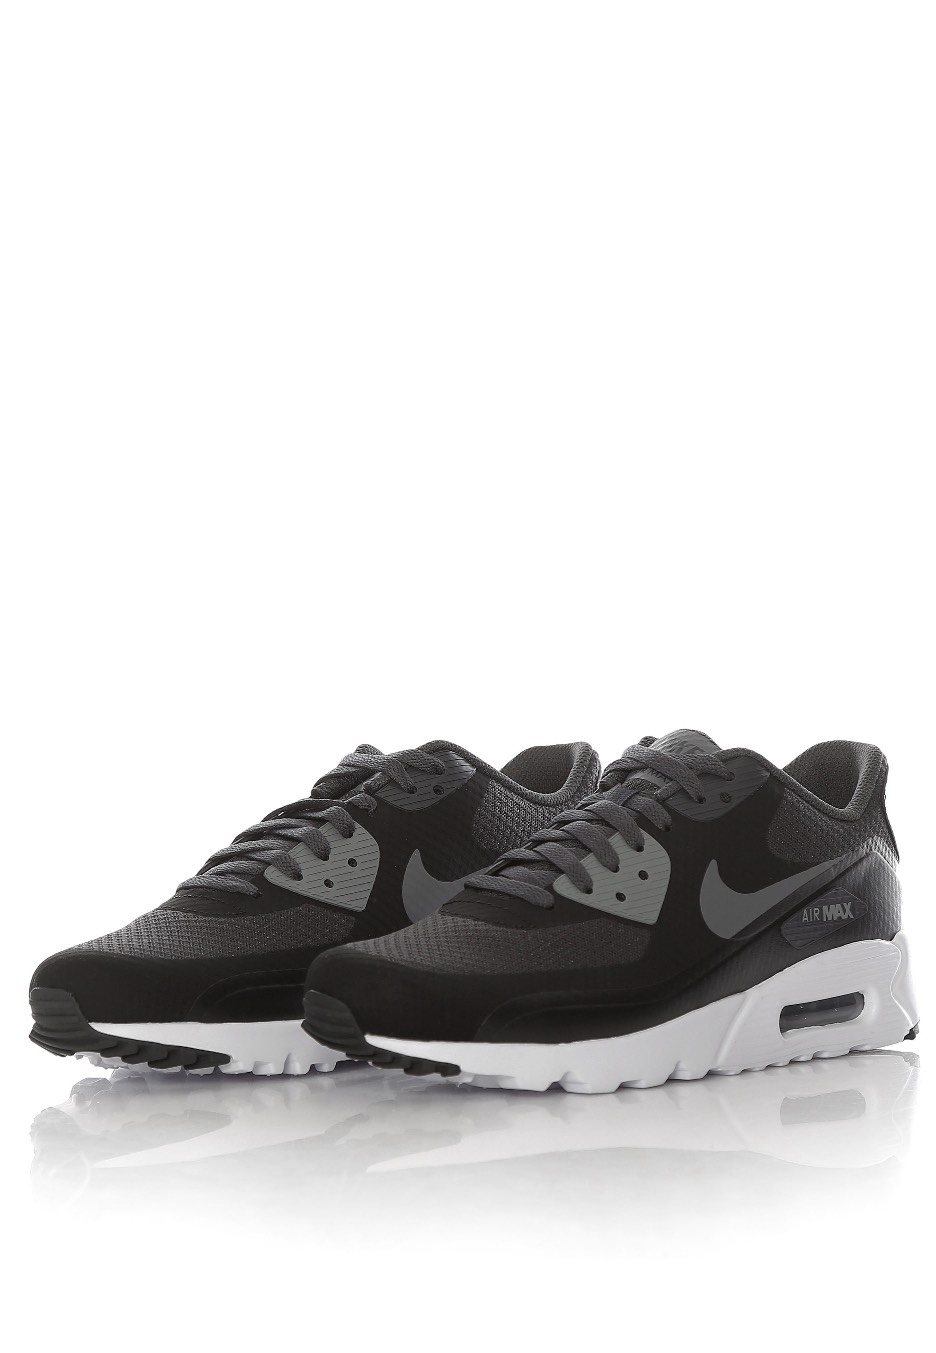 b85ec1df141 ... promo code for nike air max 90 ultra essential black cool grey anthracite  white 85d36 7c378